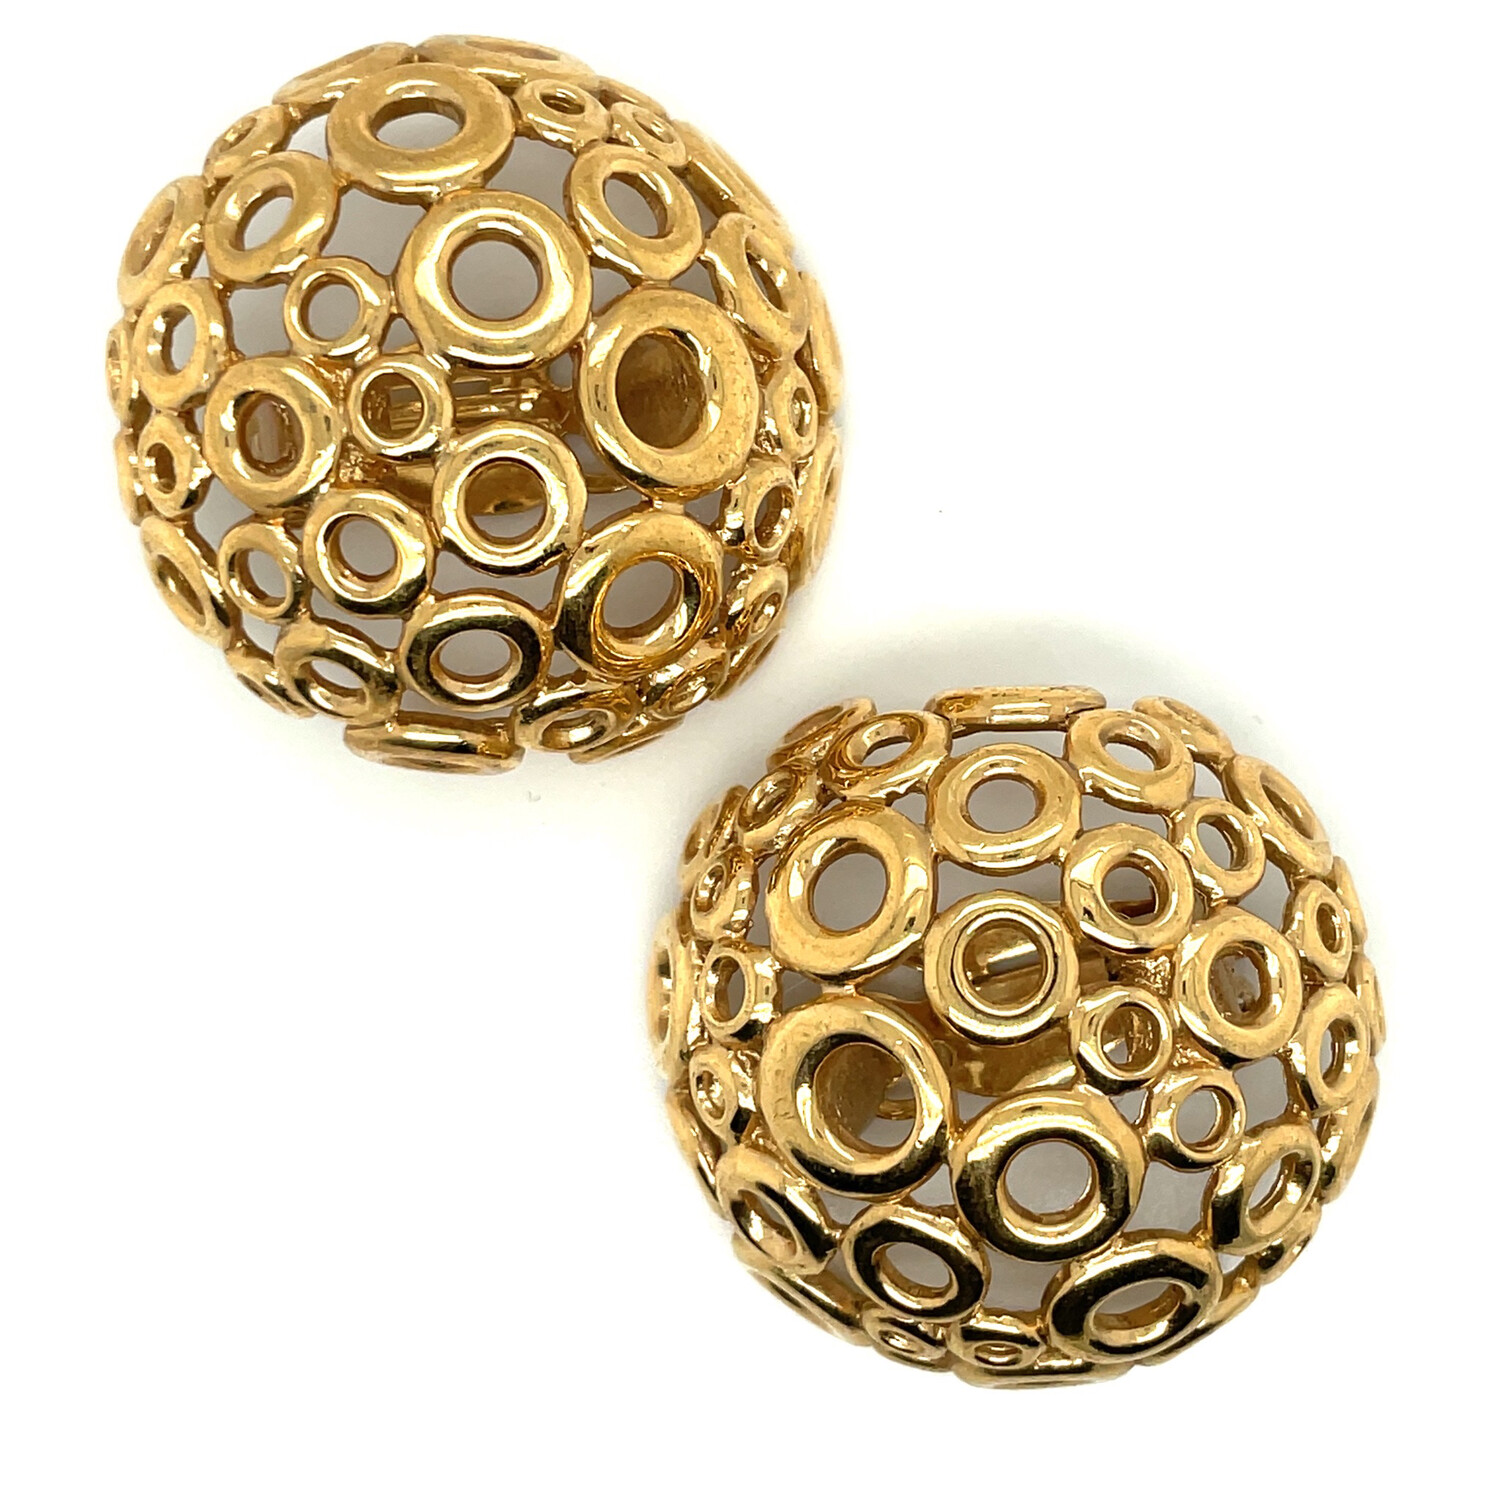 Vintage Givenchy Bubble Earrings 1980s